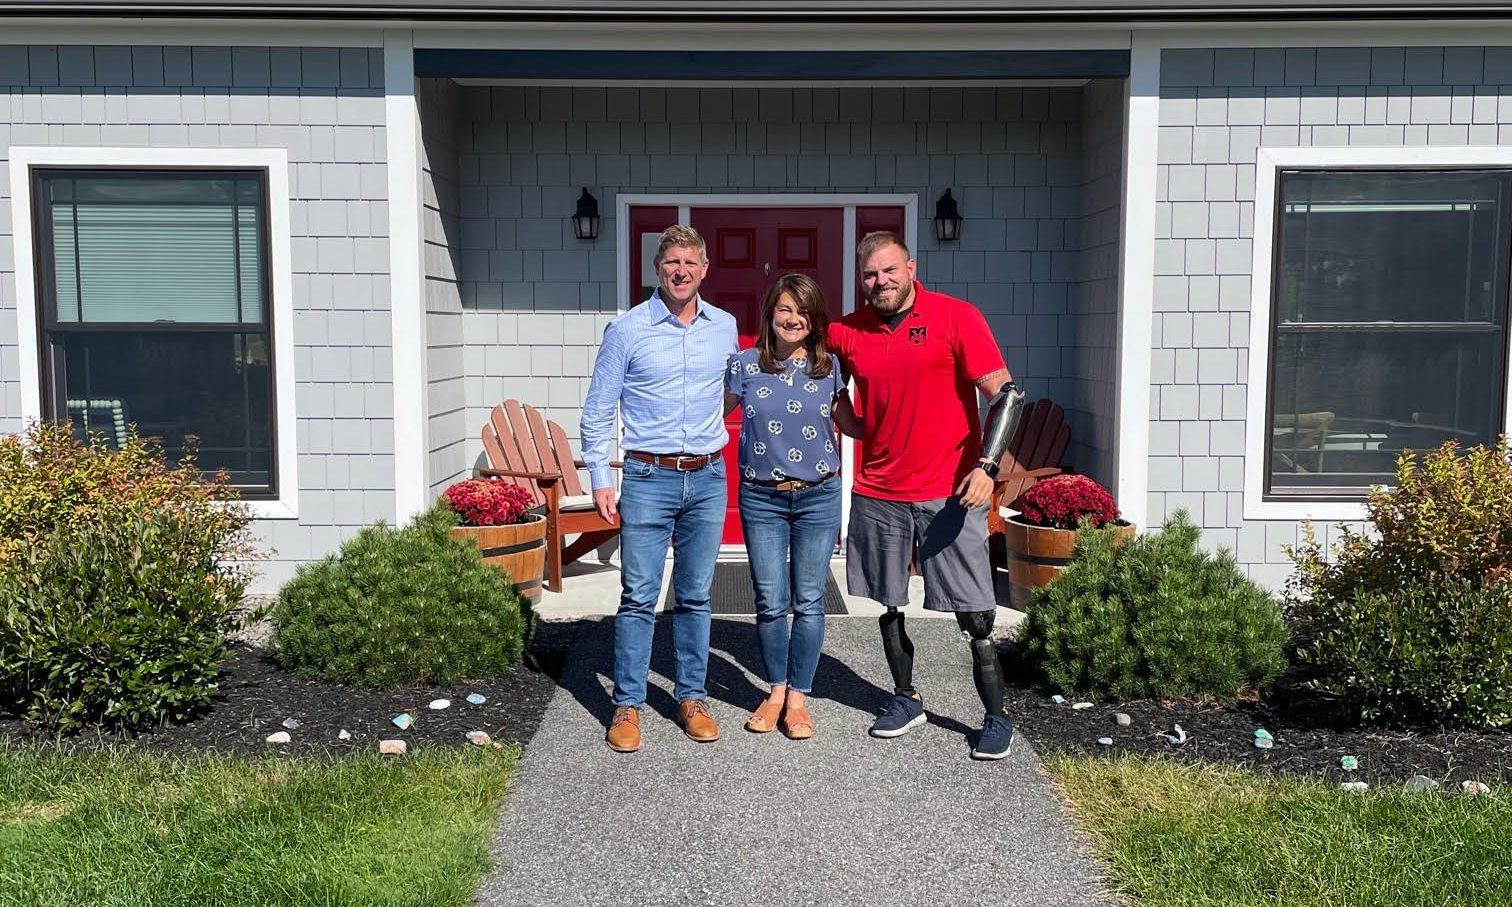 Jeff Small with Travis Mills and his wife outside.